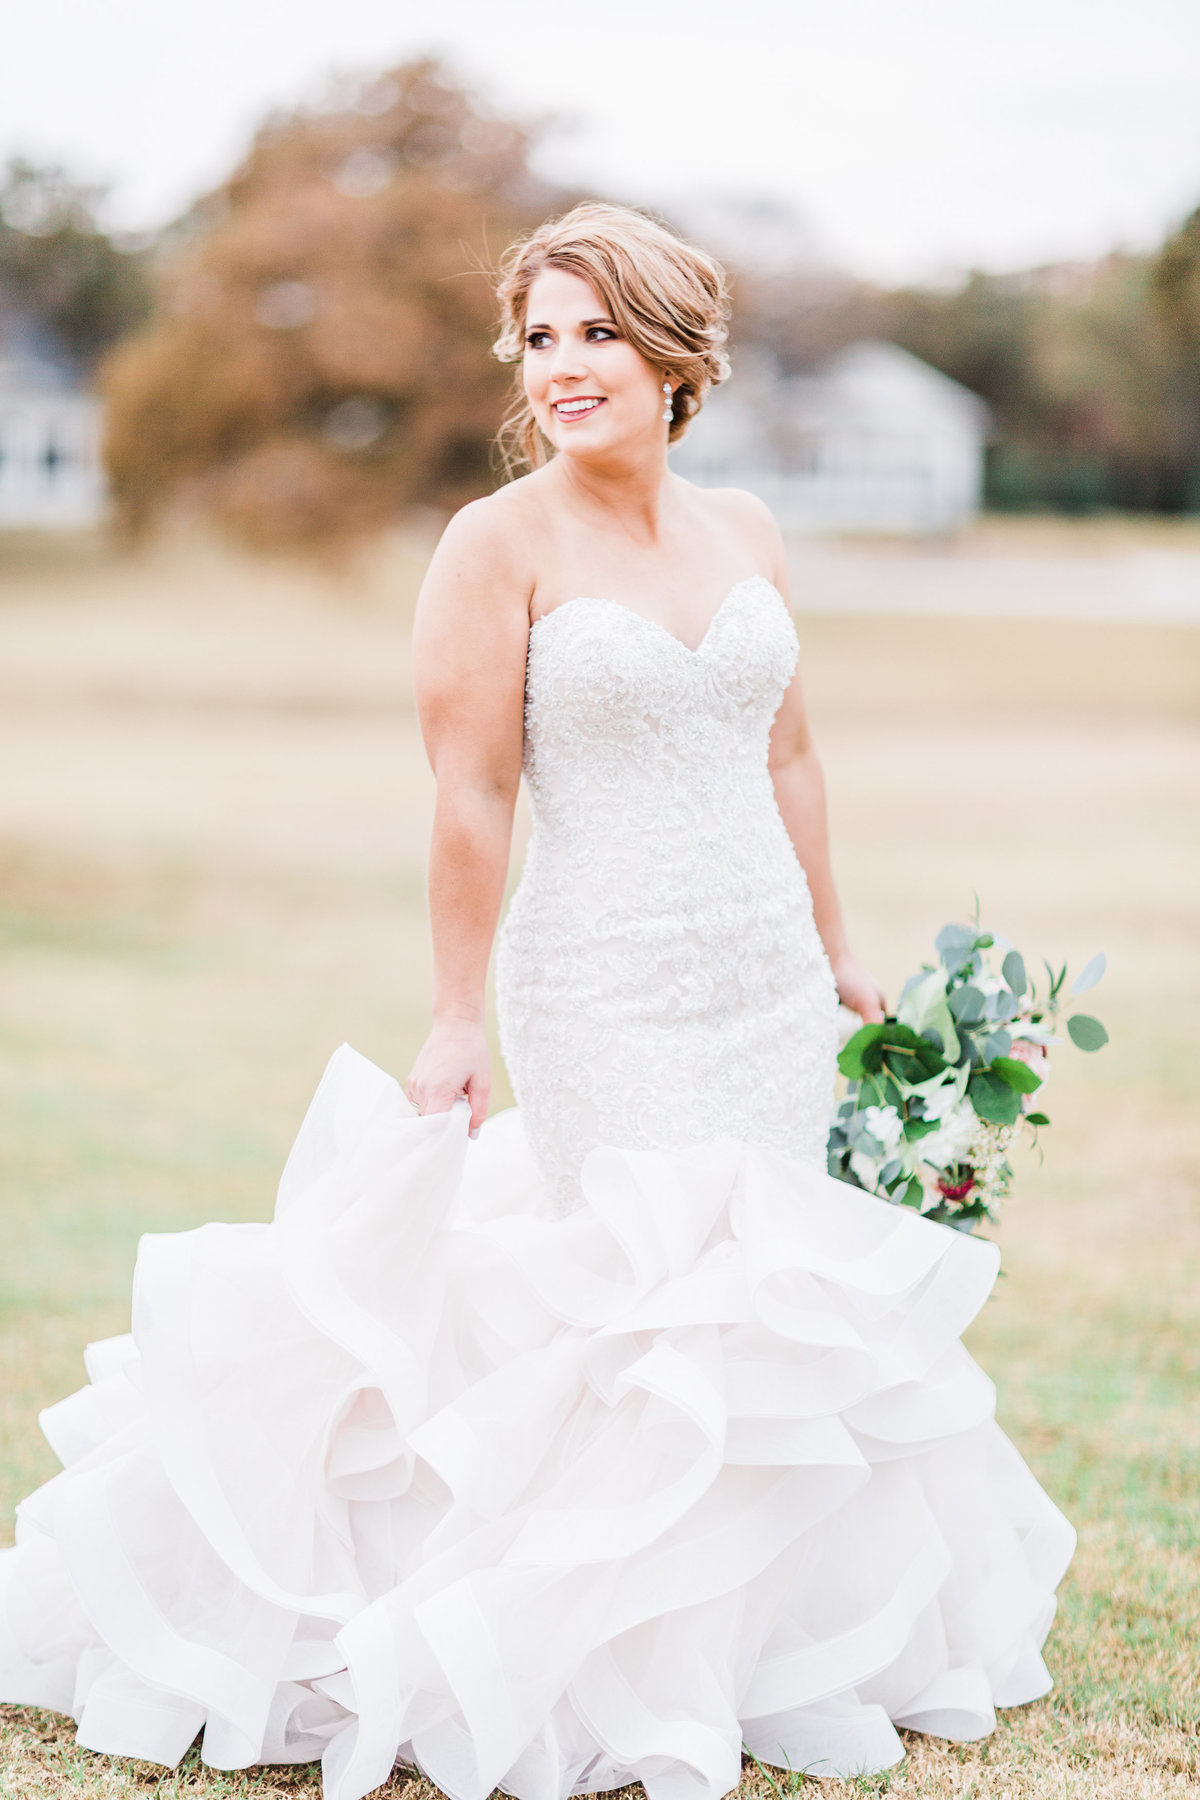 Aubry Texas Milestone Walters Wedding Estates Bridal Portraits